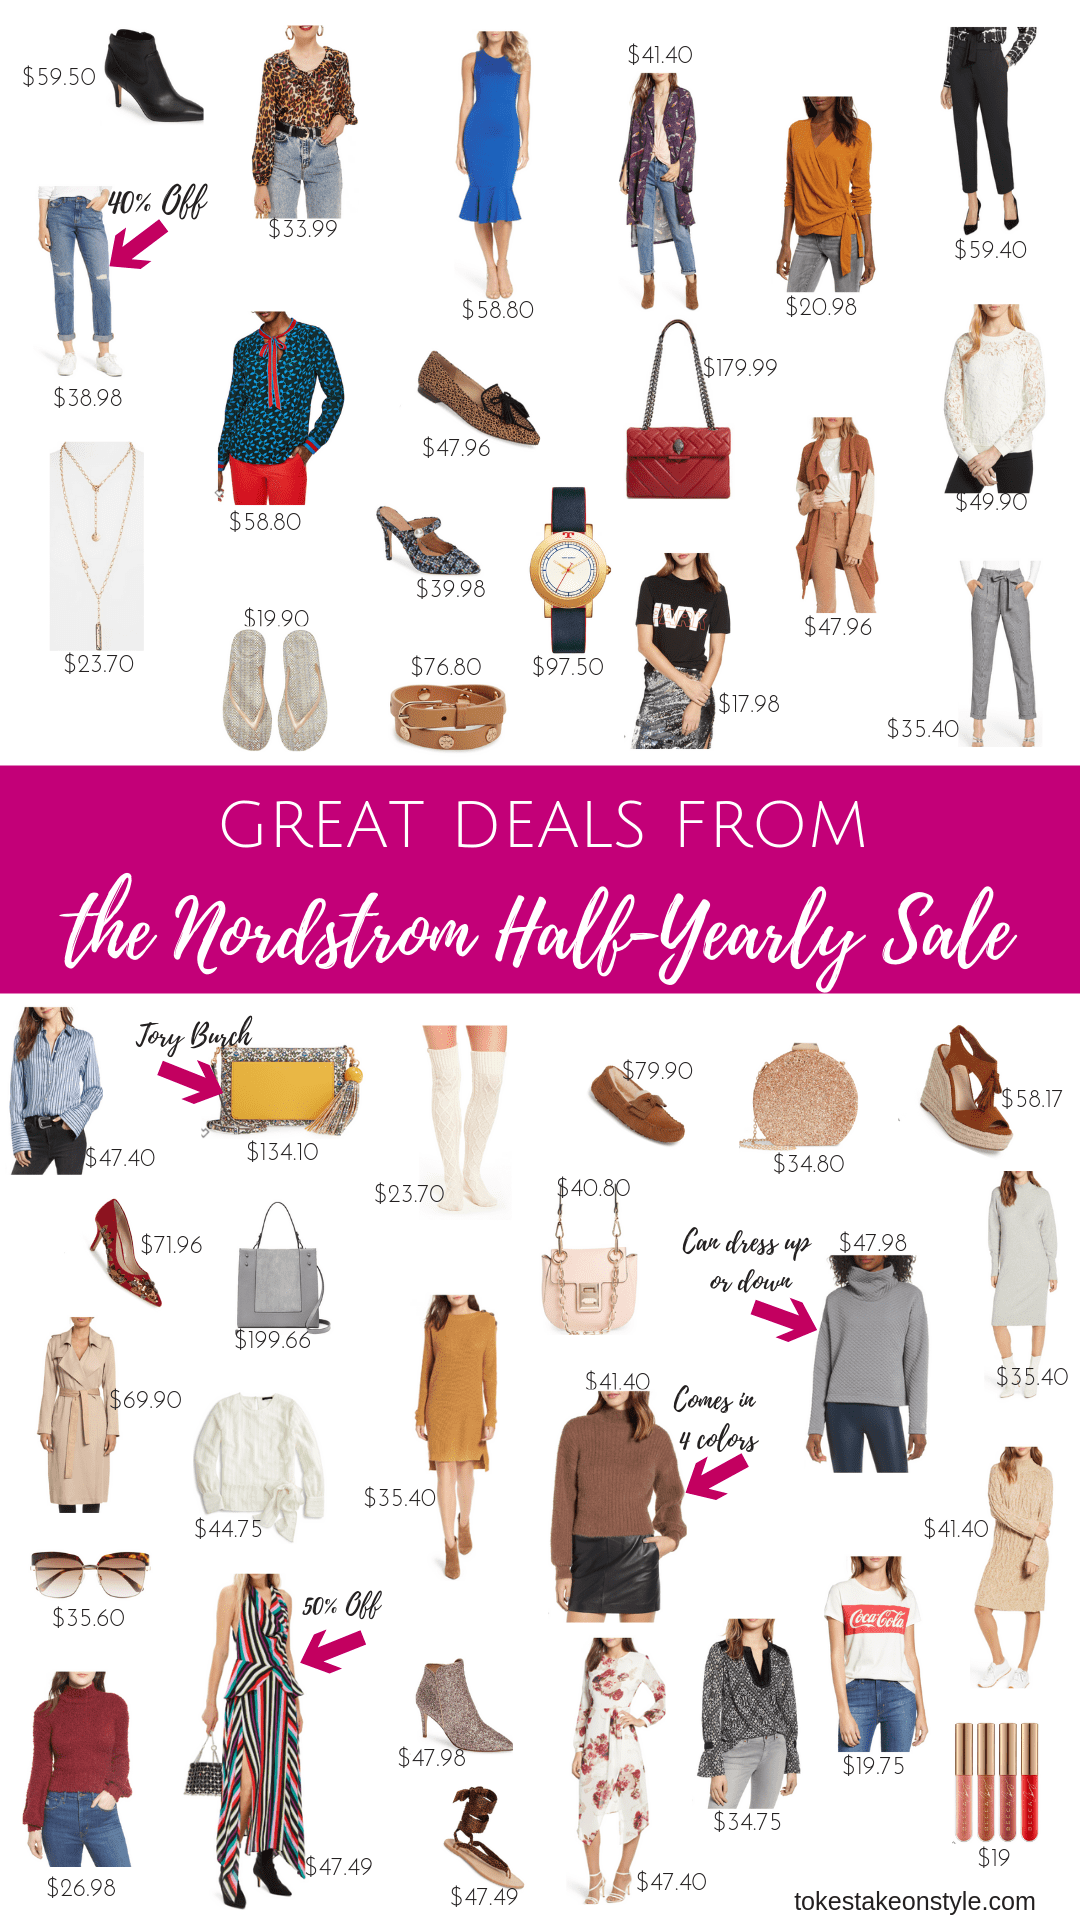 tokestakeonstyle-best-deals-nordstrom-half-yearly-sale